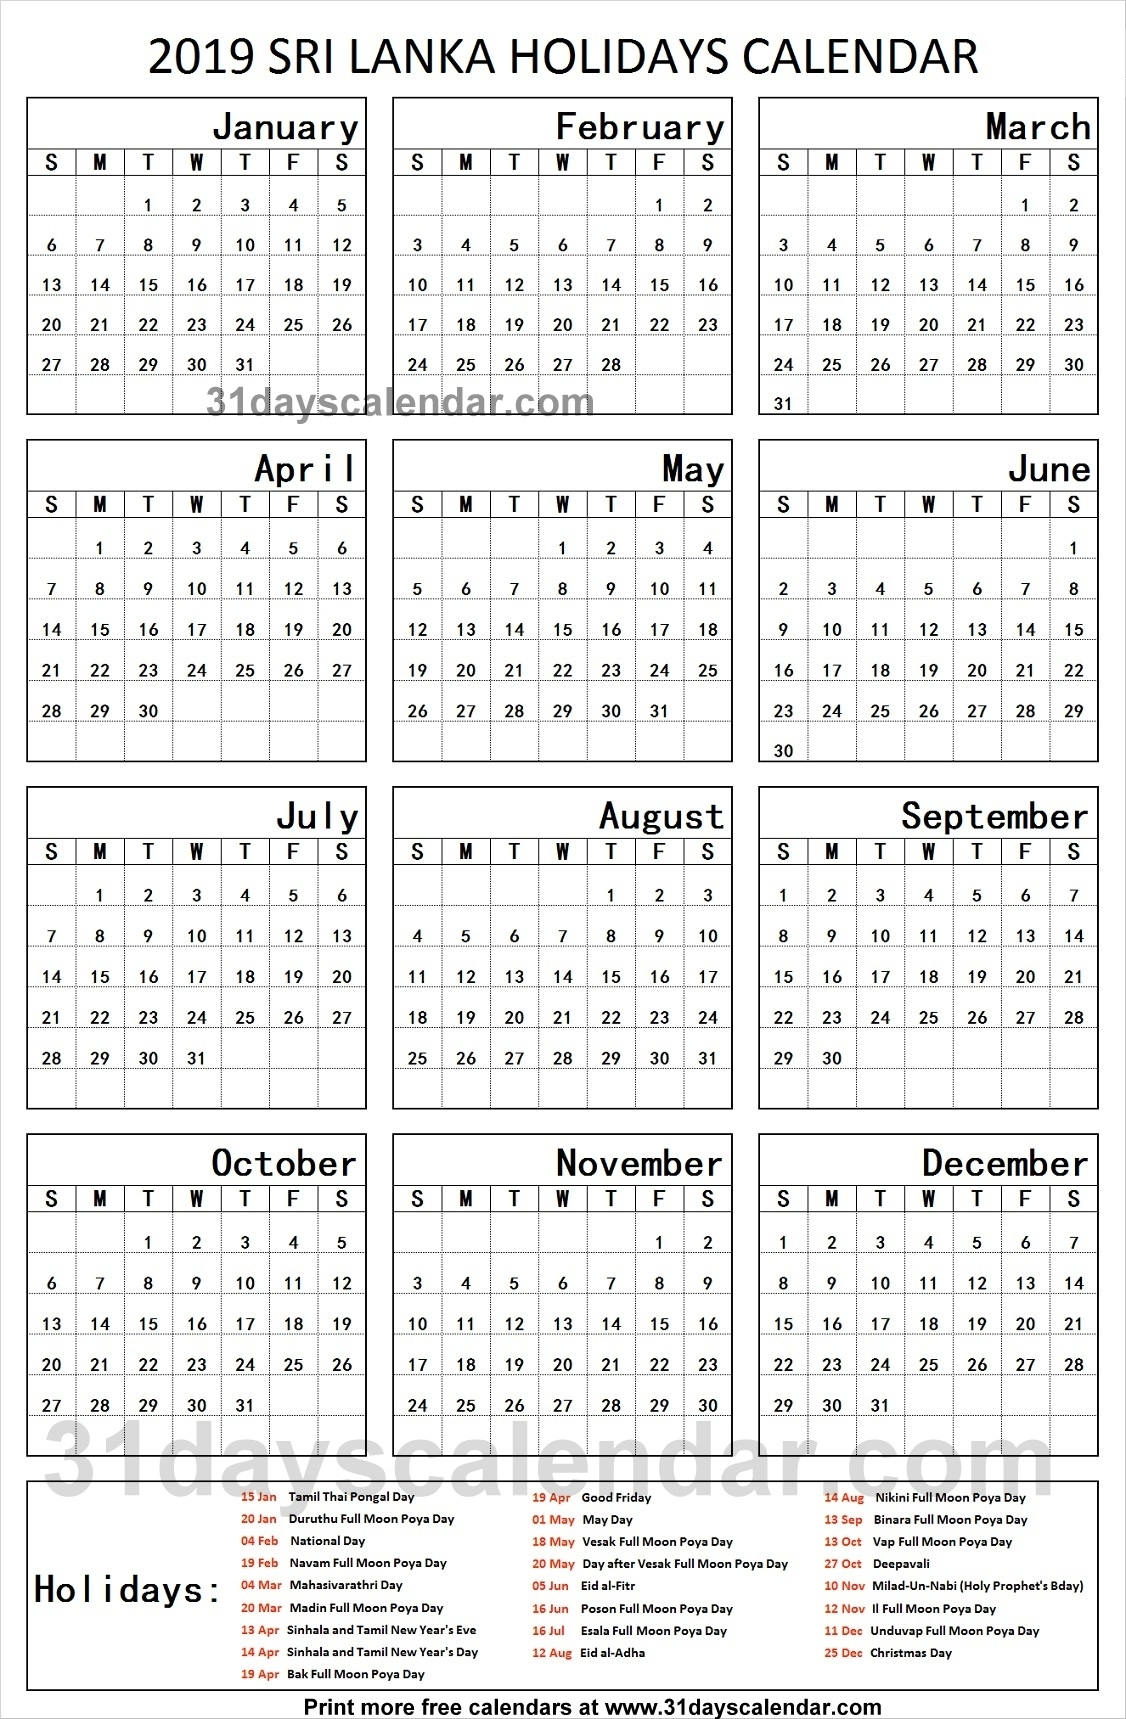 Sri Lanka National Holidays 2019 Calendar | 2019 Sri Lanka Holidays for List Ofhoidays In Sri Lanka